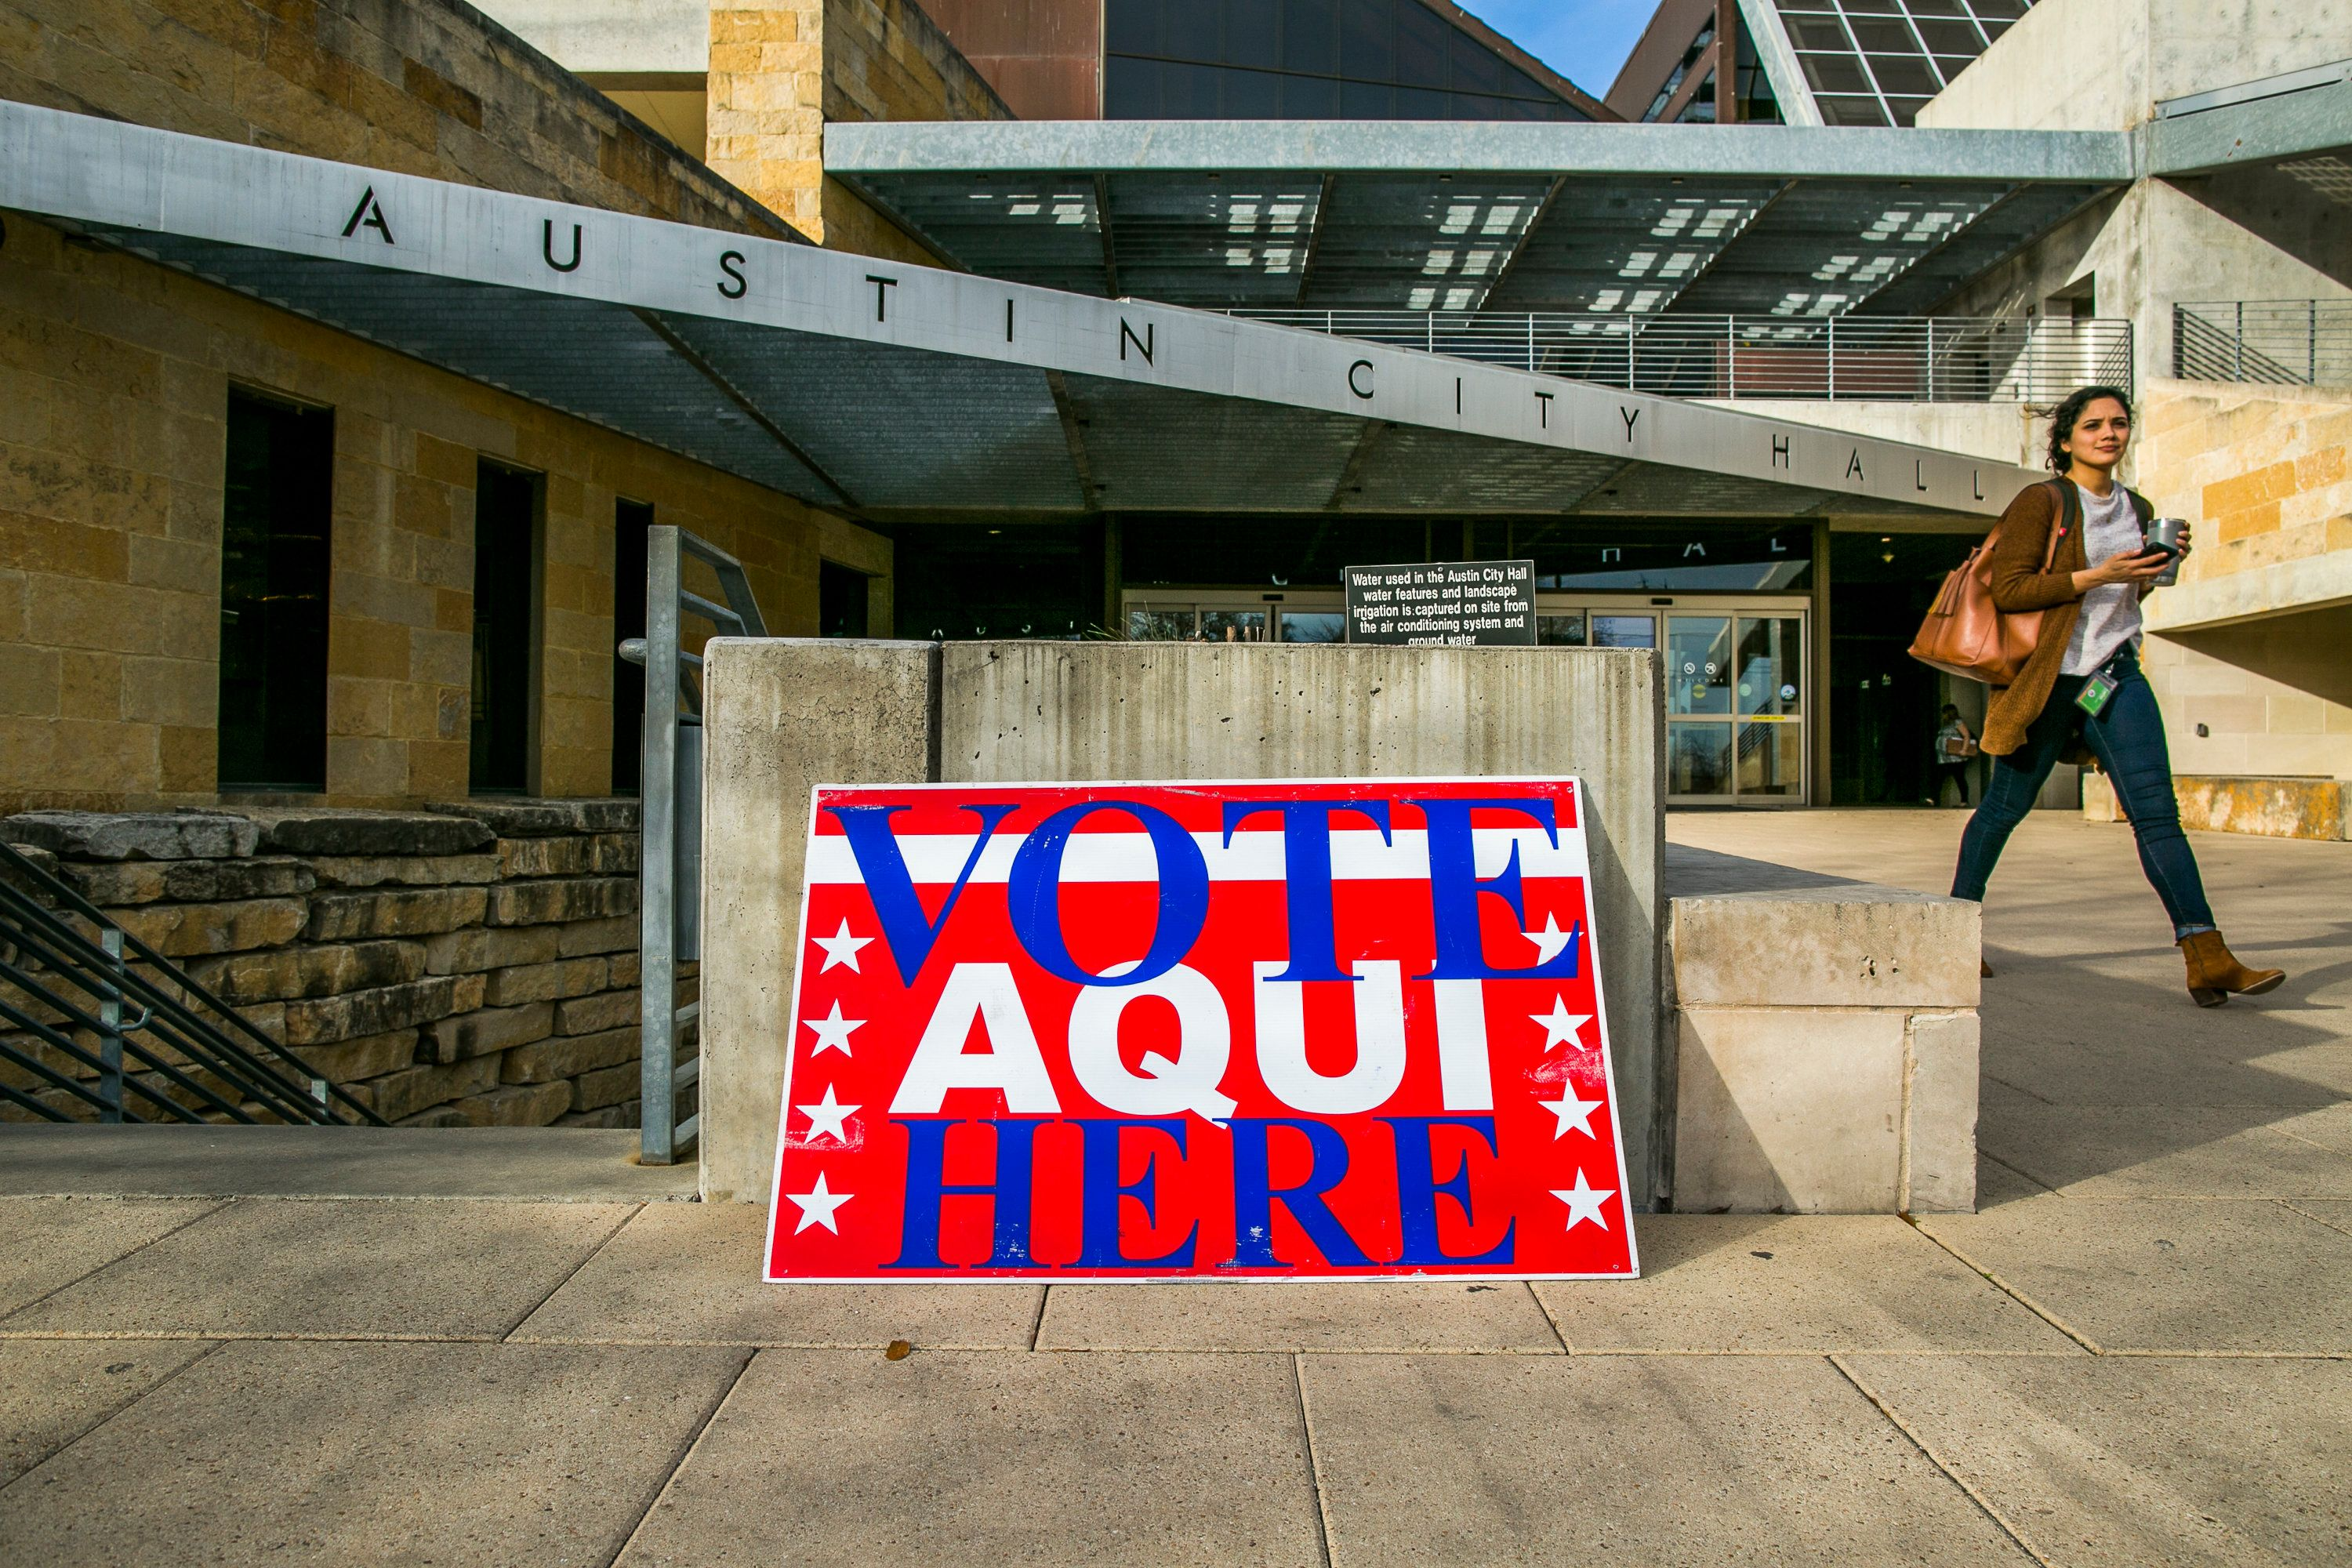 AUSTIN, TX - MARCH 06: A pedestrian walks past Austin City Hall, an early voting center, on March 6, 2018 in Austin, Texas. Democrats are seeing a large increase in voter turnourt compared to last year. (Photo by Drew Anthony Smith/Getty Images)